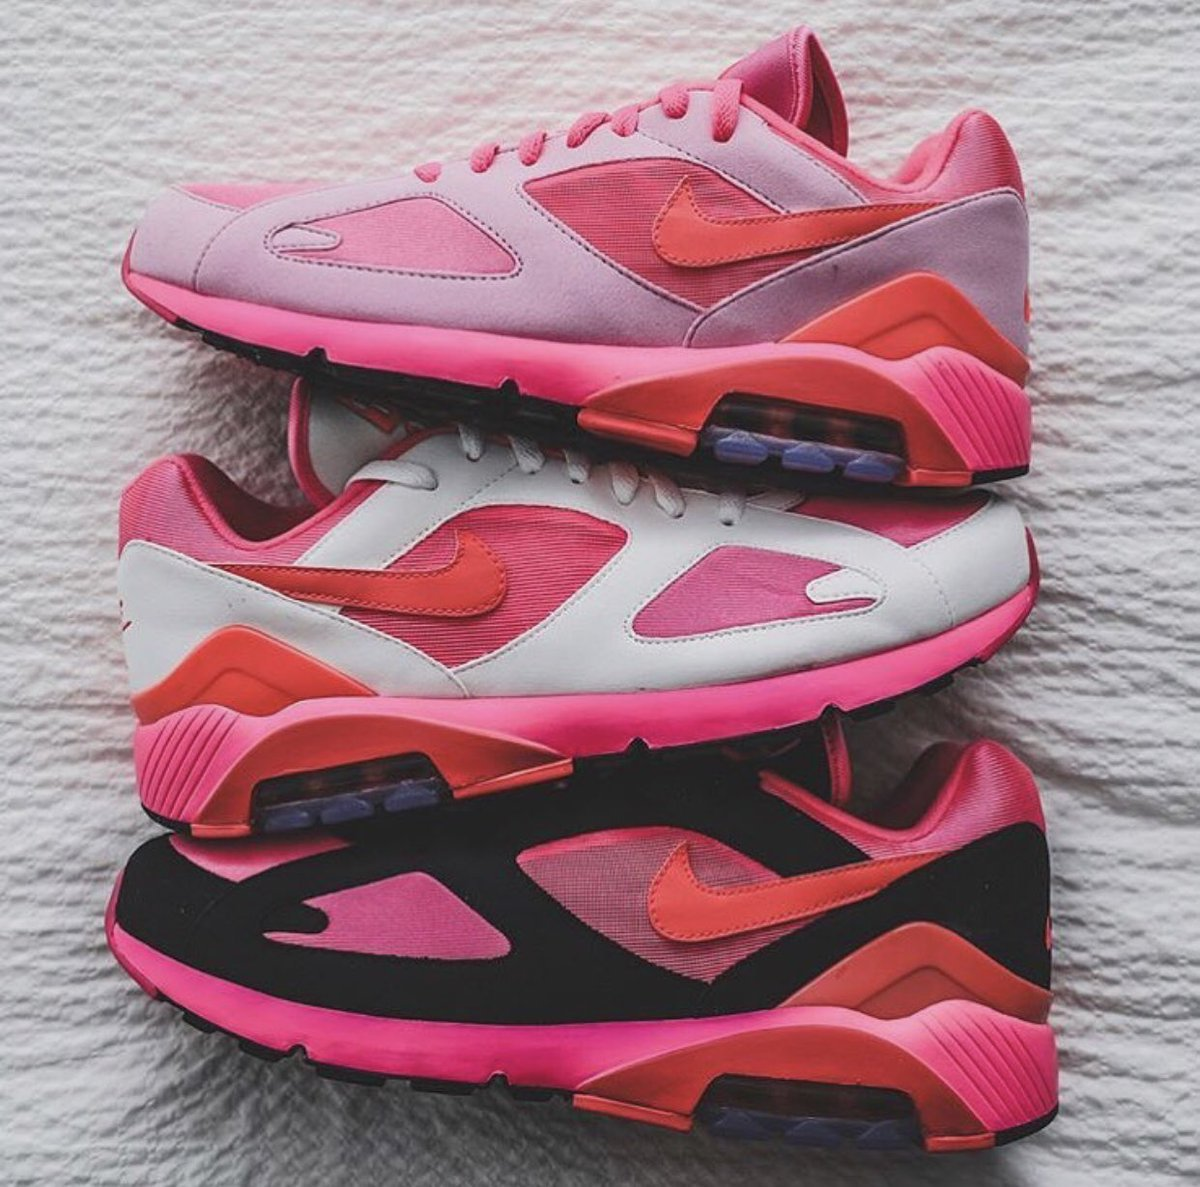 Comme des Garçons x Nike Air Max 180 'Pink' sizes selling out Link ->  http://bit.ly/2DXGEUU pic.twitter.com/uTH0CpGmMU